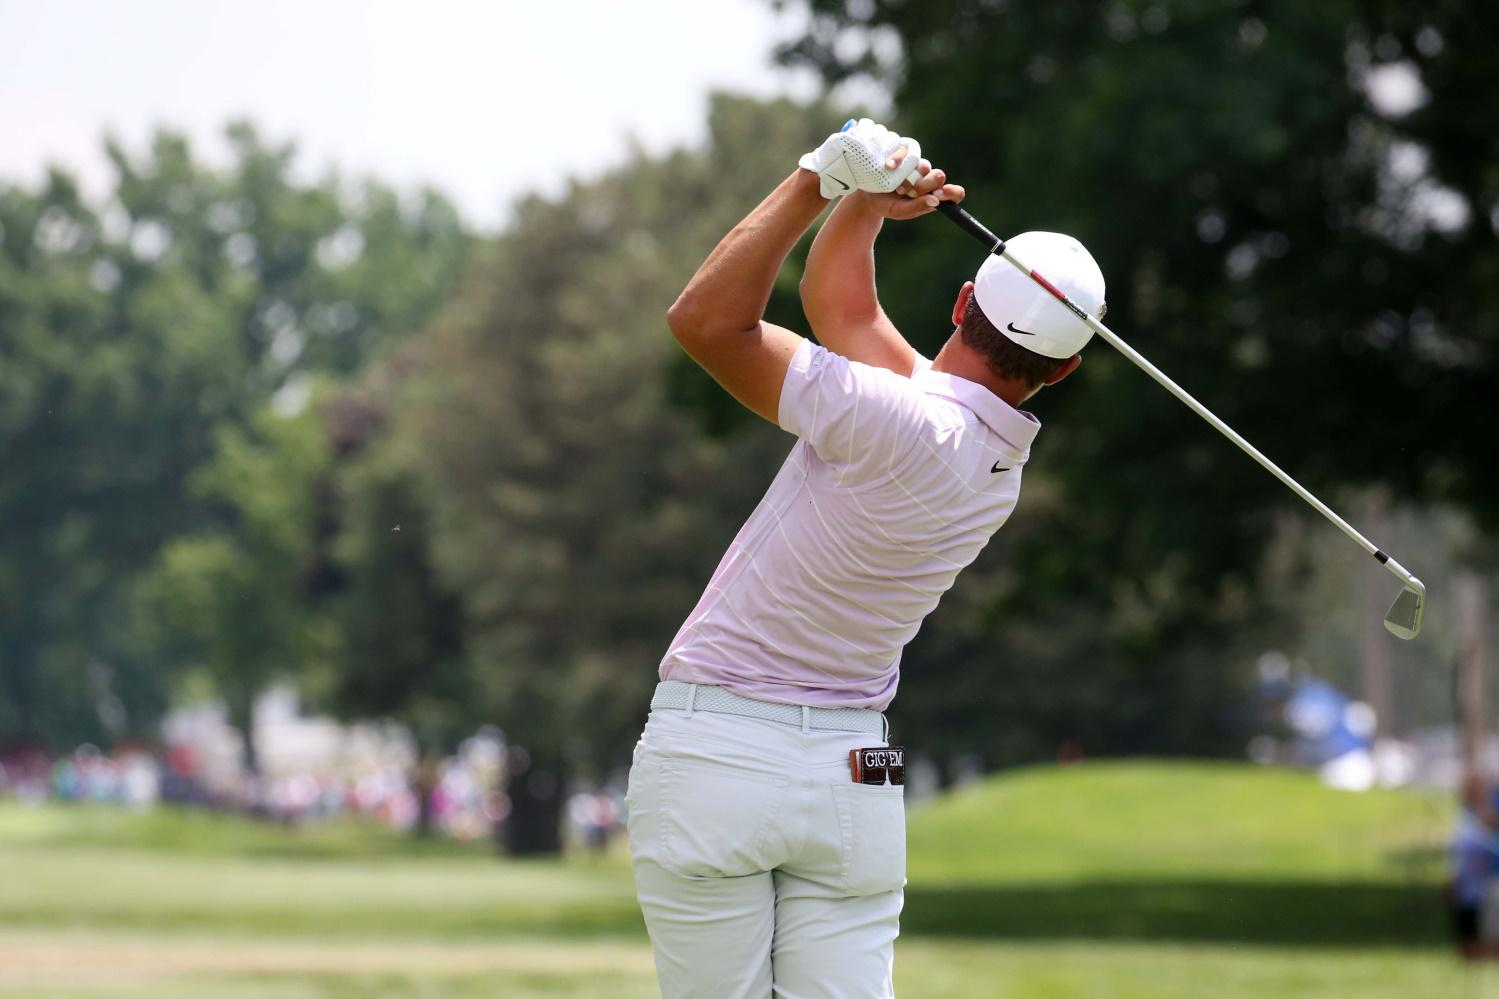 Cameron Looking To Be Safeway Champ